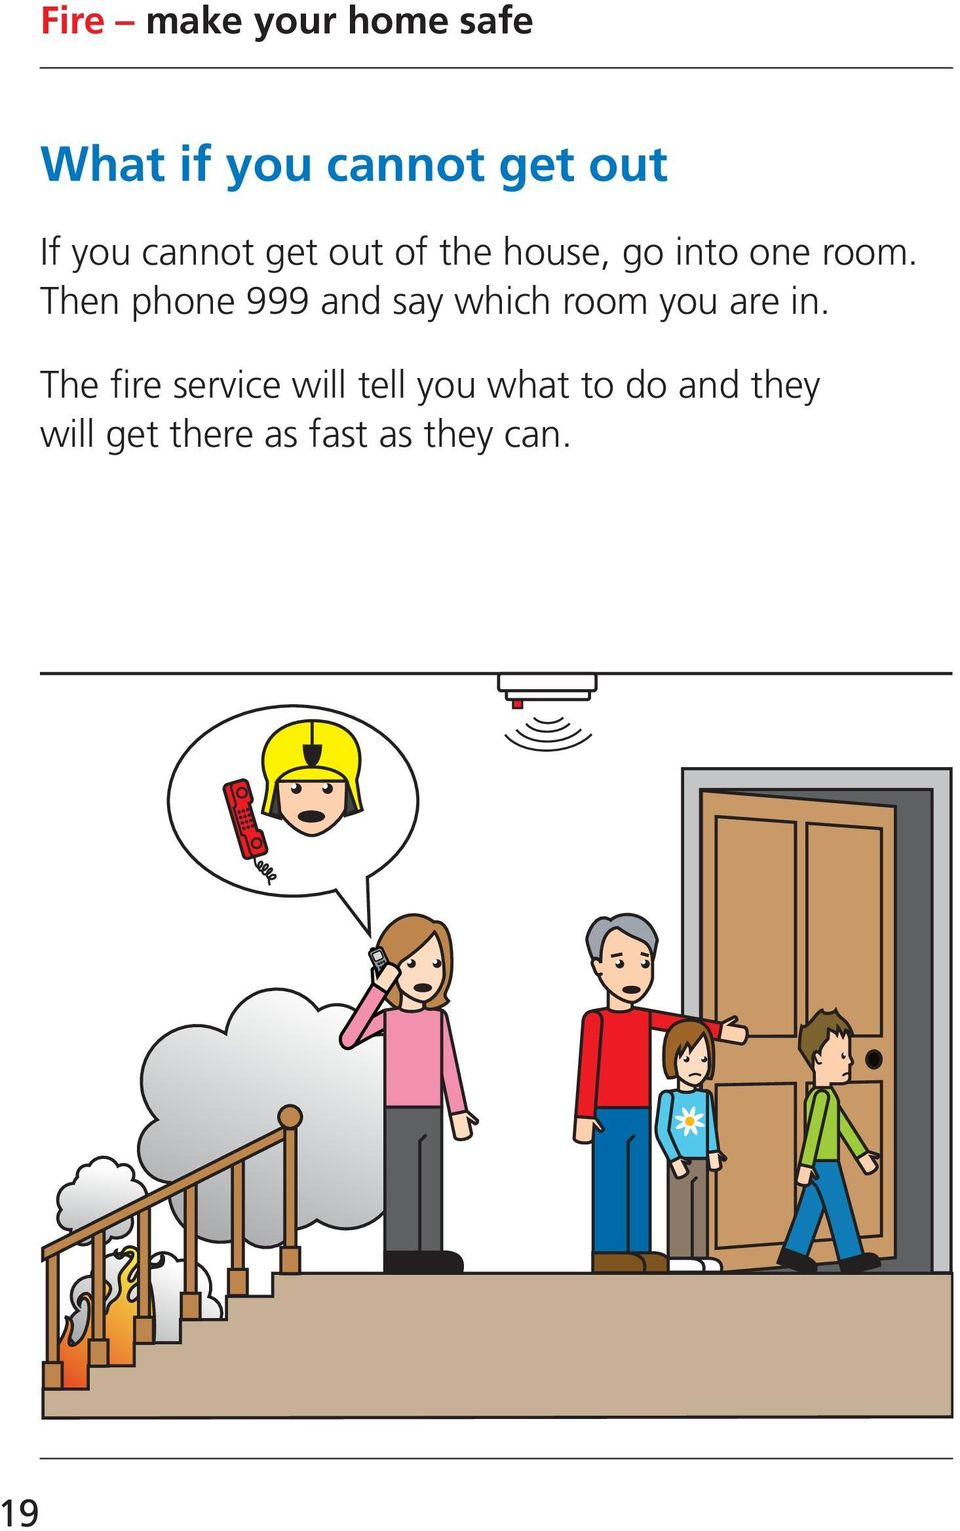 Then phone 999 and say which room you are in.